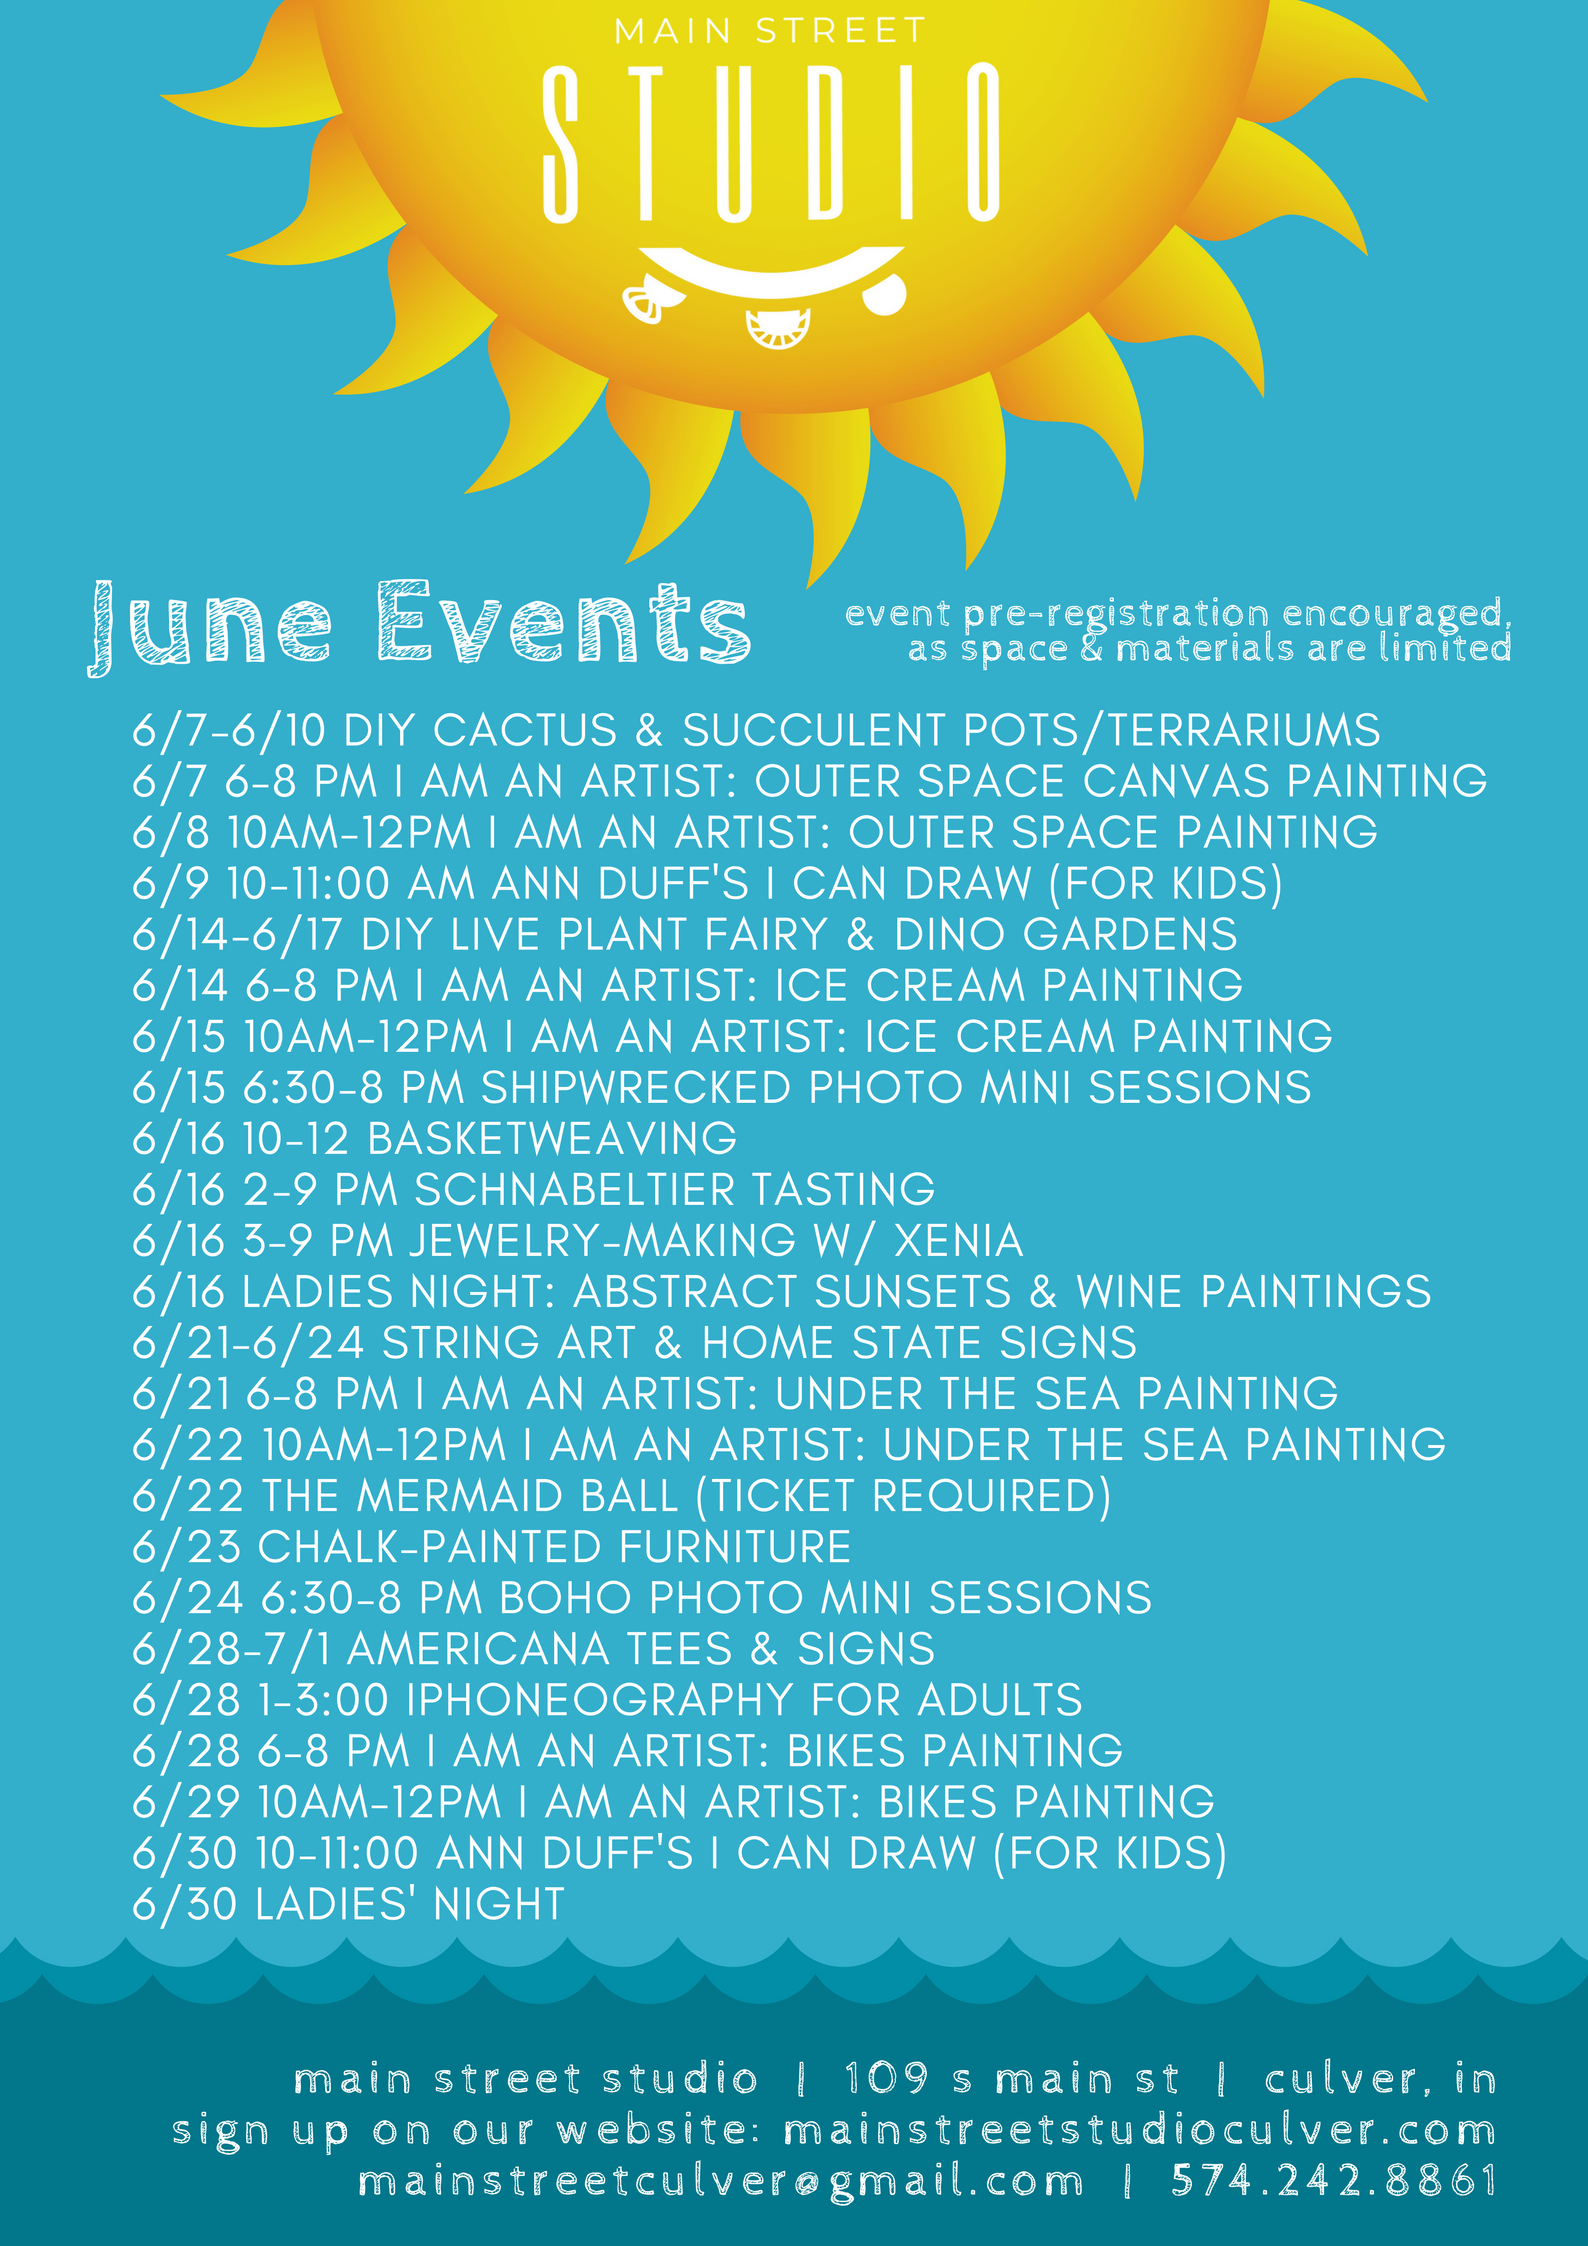 june events.jpg